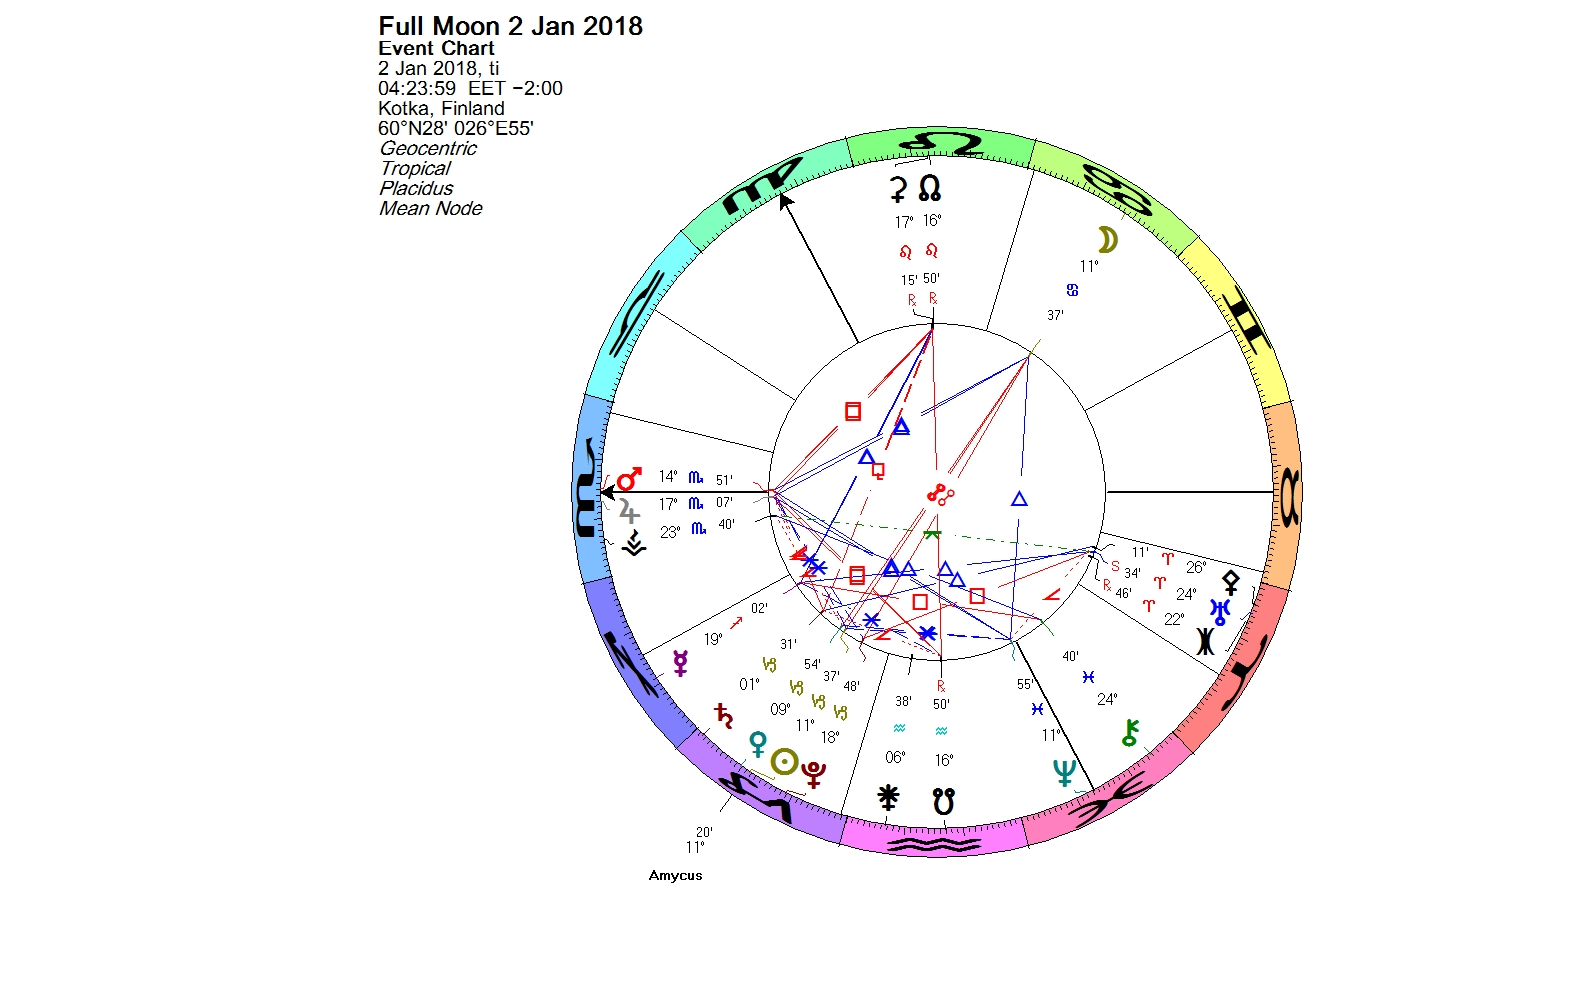 Full moon in cancer january 2 2018 224 ut astrodispatch sign of the moon the sun in the opposite sign capricorn is in conjunction with venus and a little centaur planet amycus also saturn is in capricorn pooptronica Choice Image